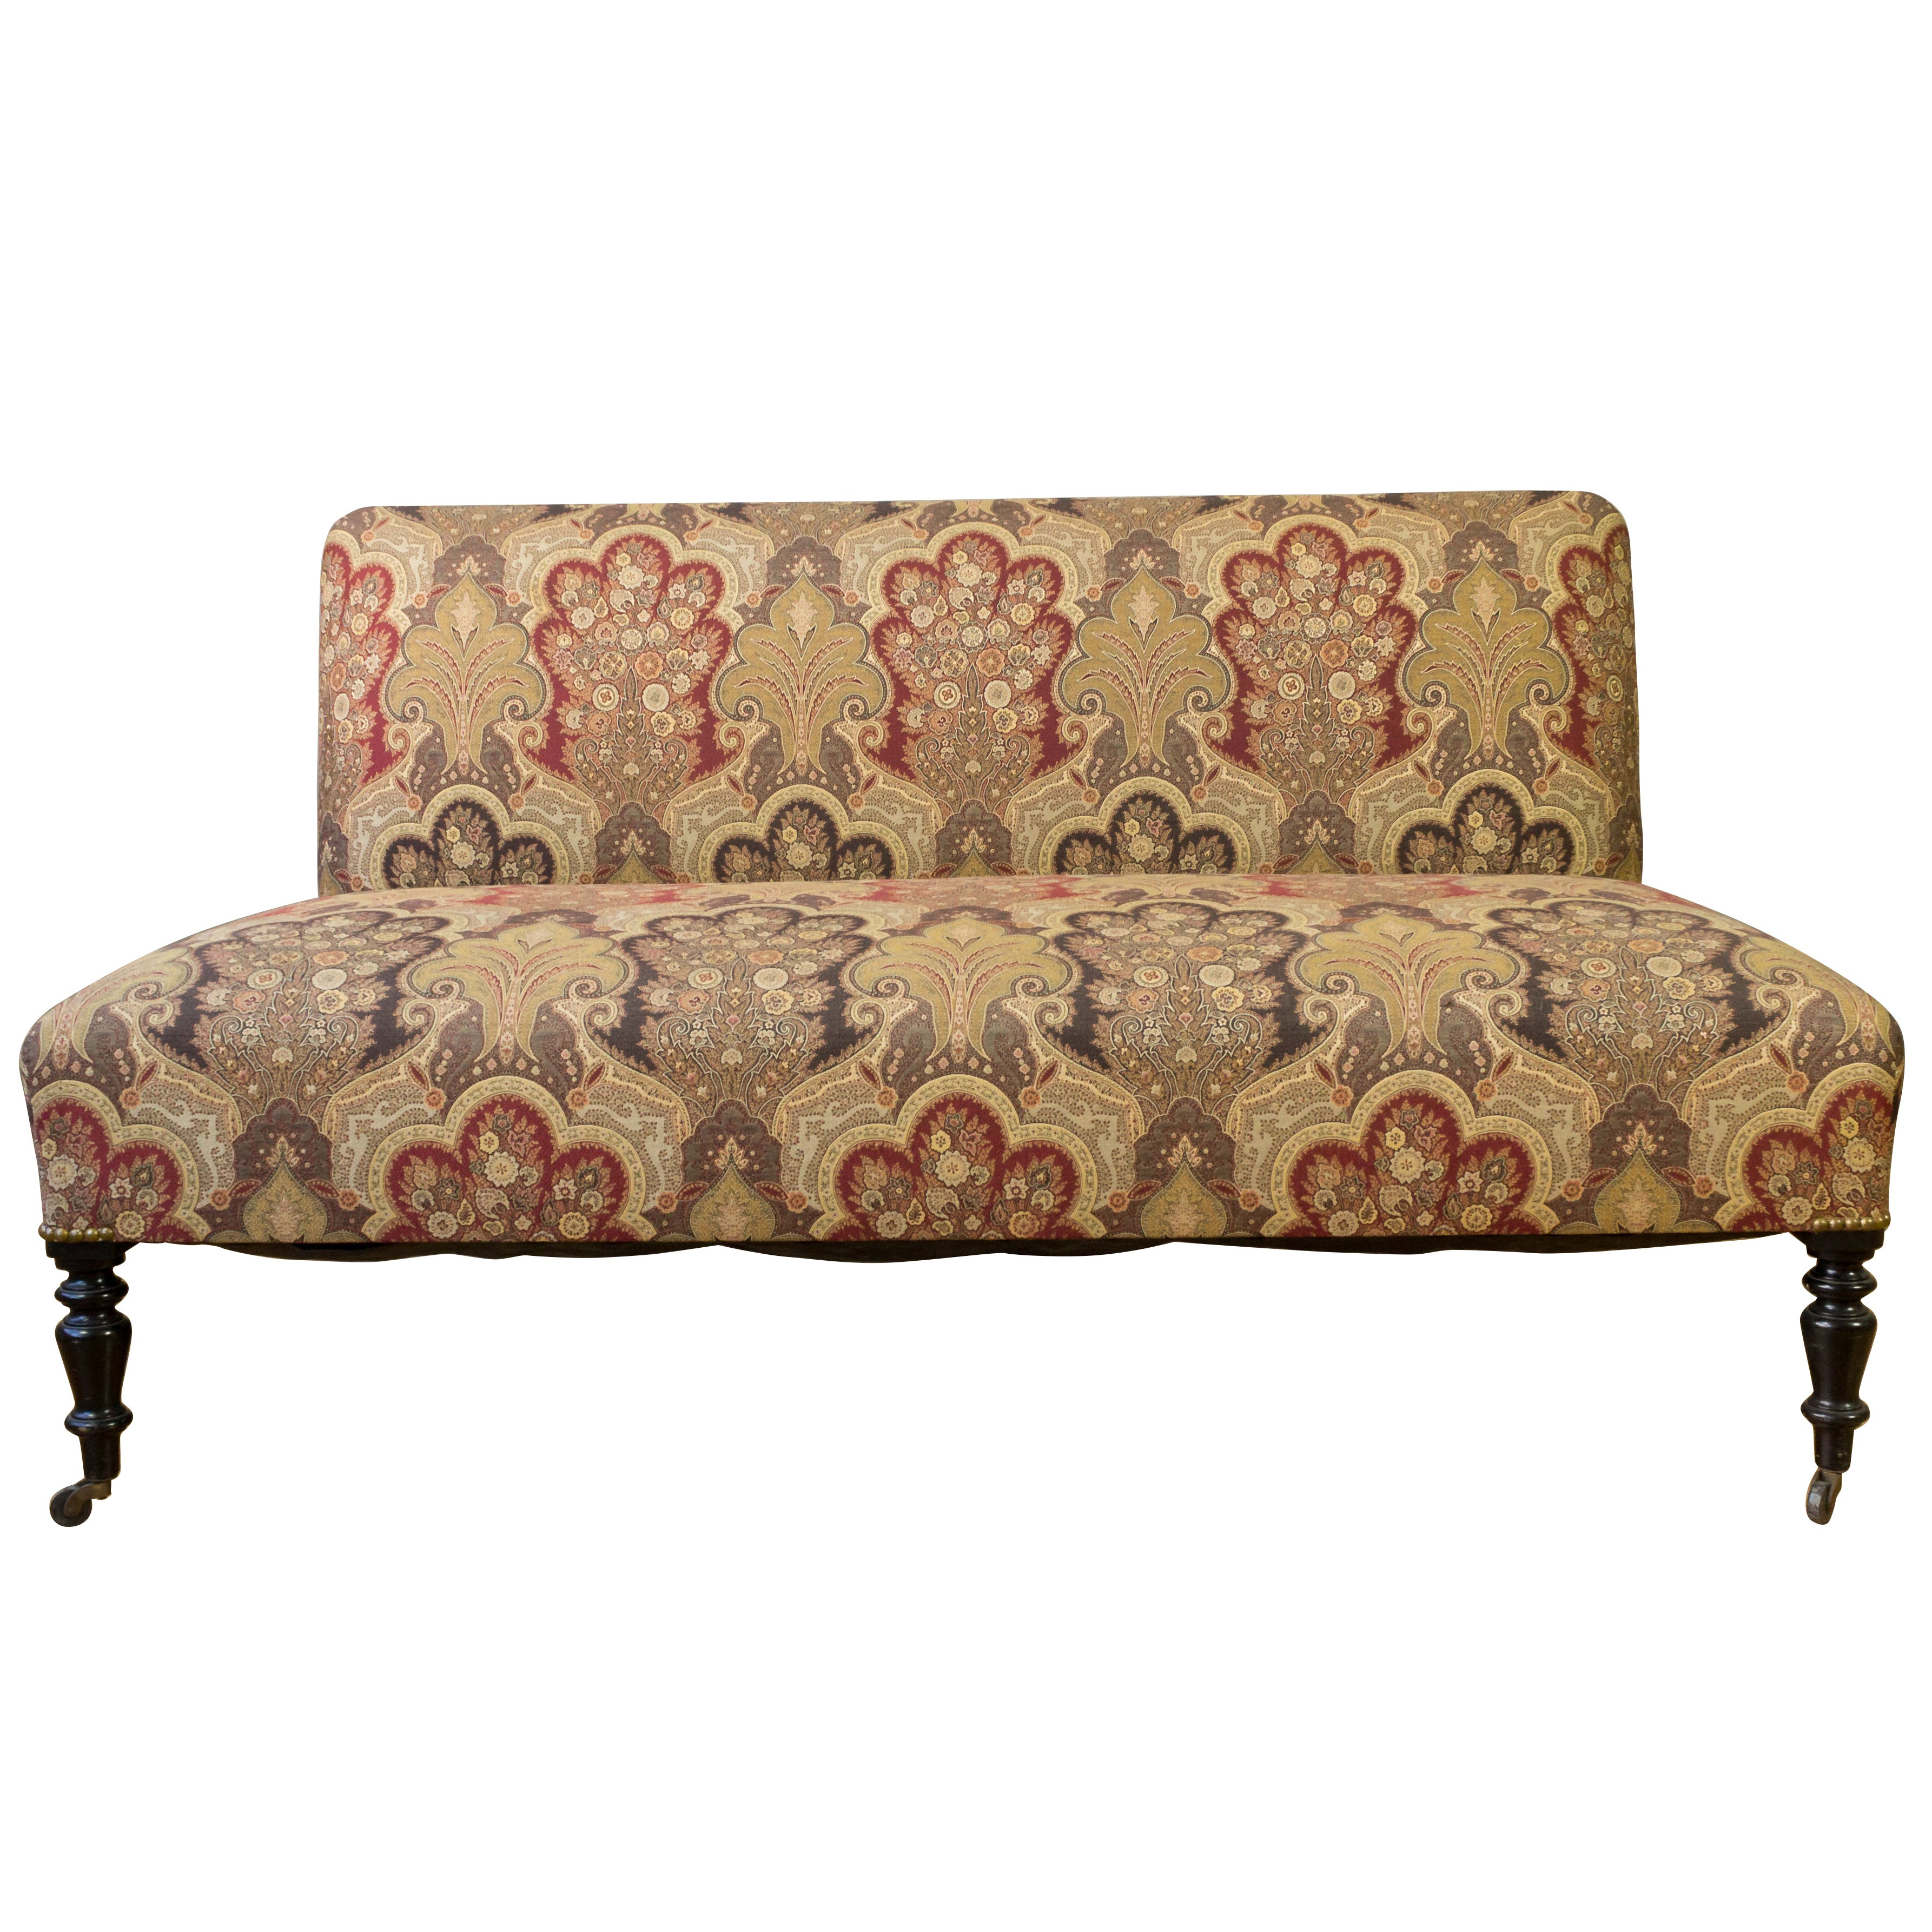 Groovy Napoleon Iii Sofas 13 For Sale At 1Stdibs Evergreenethics Interior Chair Design Evergreenethicsorg